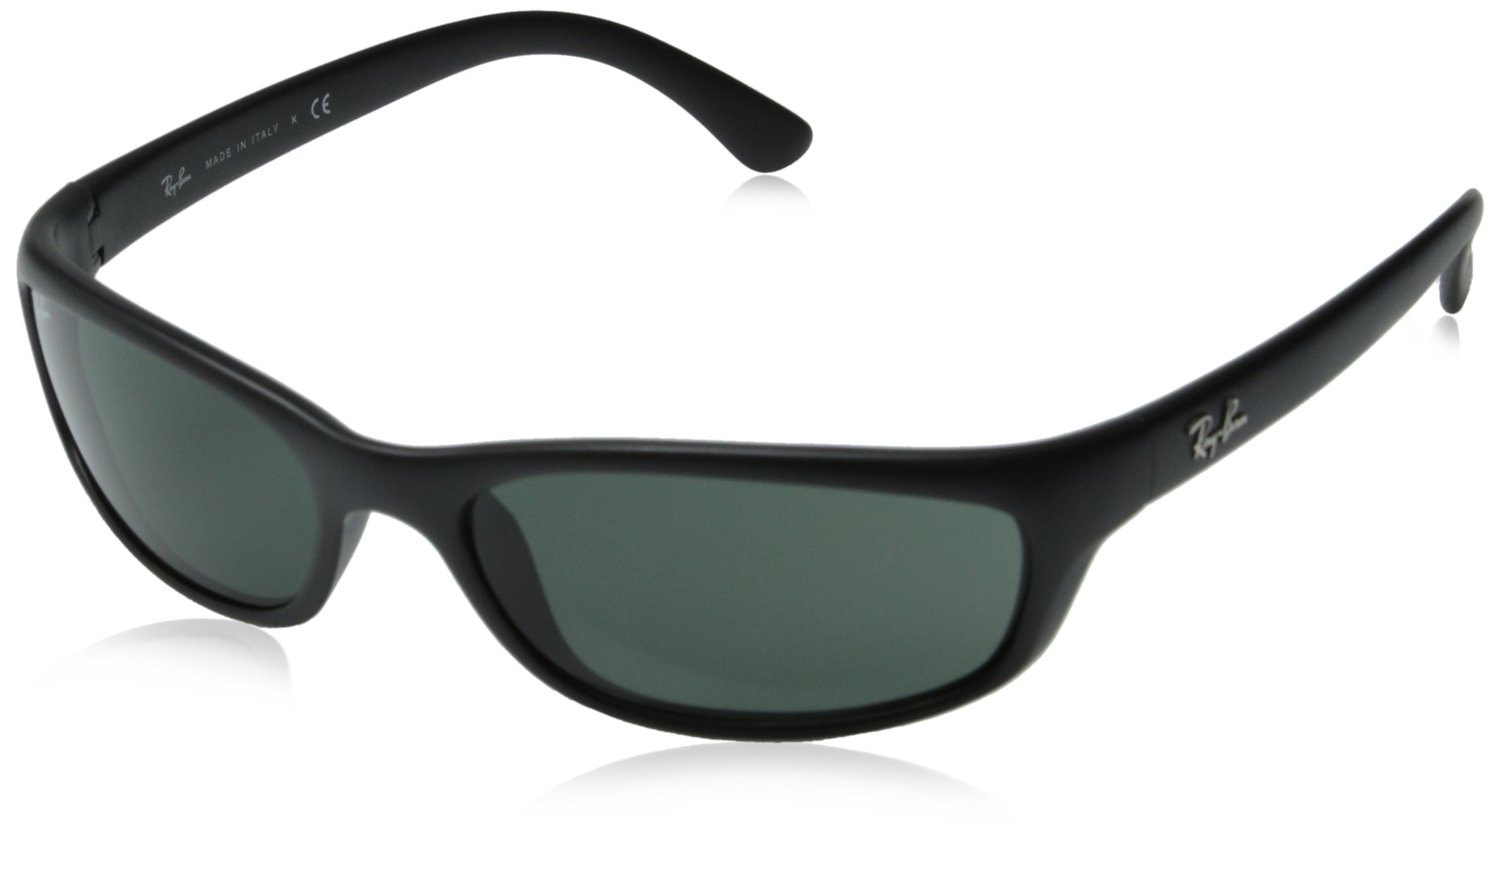 Discount Ray Ban Sunglasses Cheap Ray Ban Polarized